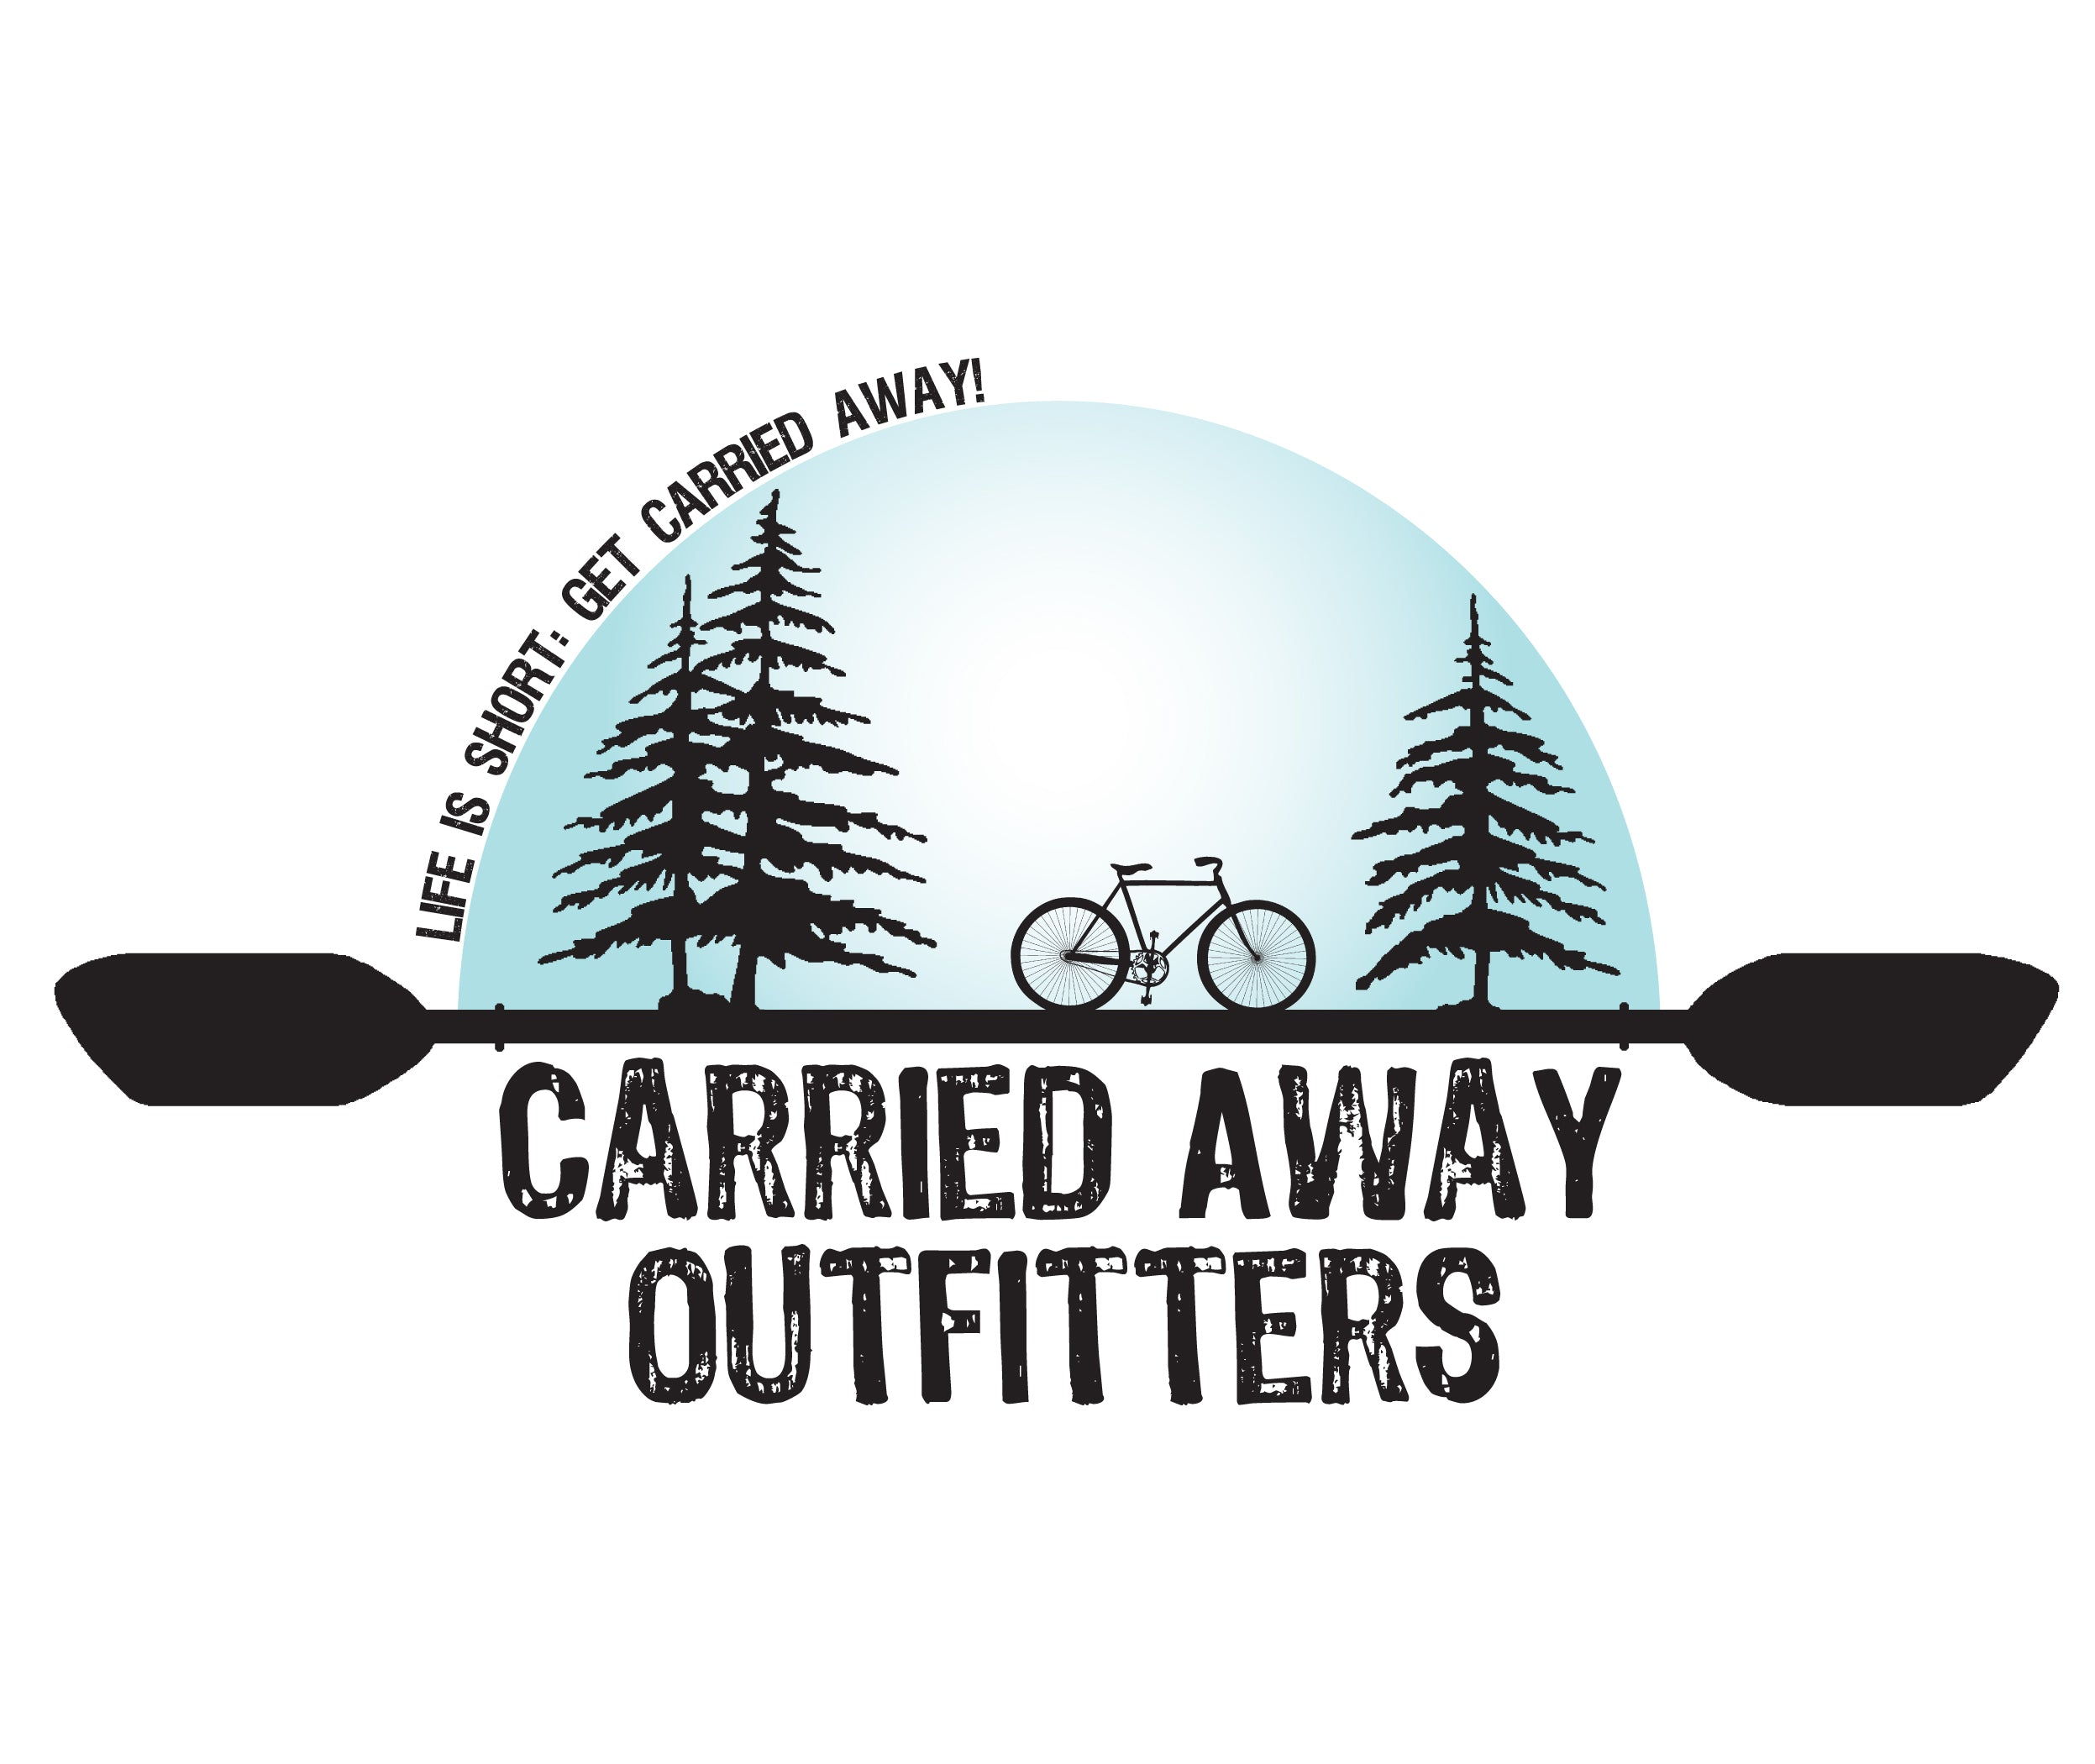 Carried Away Outfitters: Rock, River and Trail